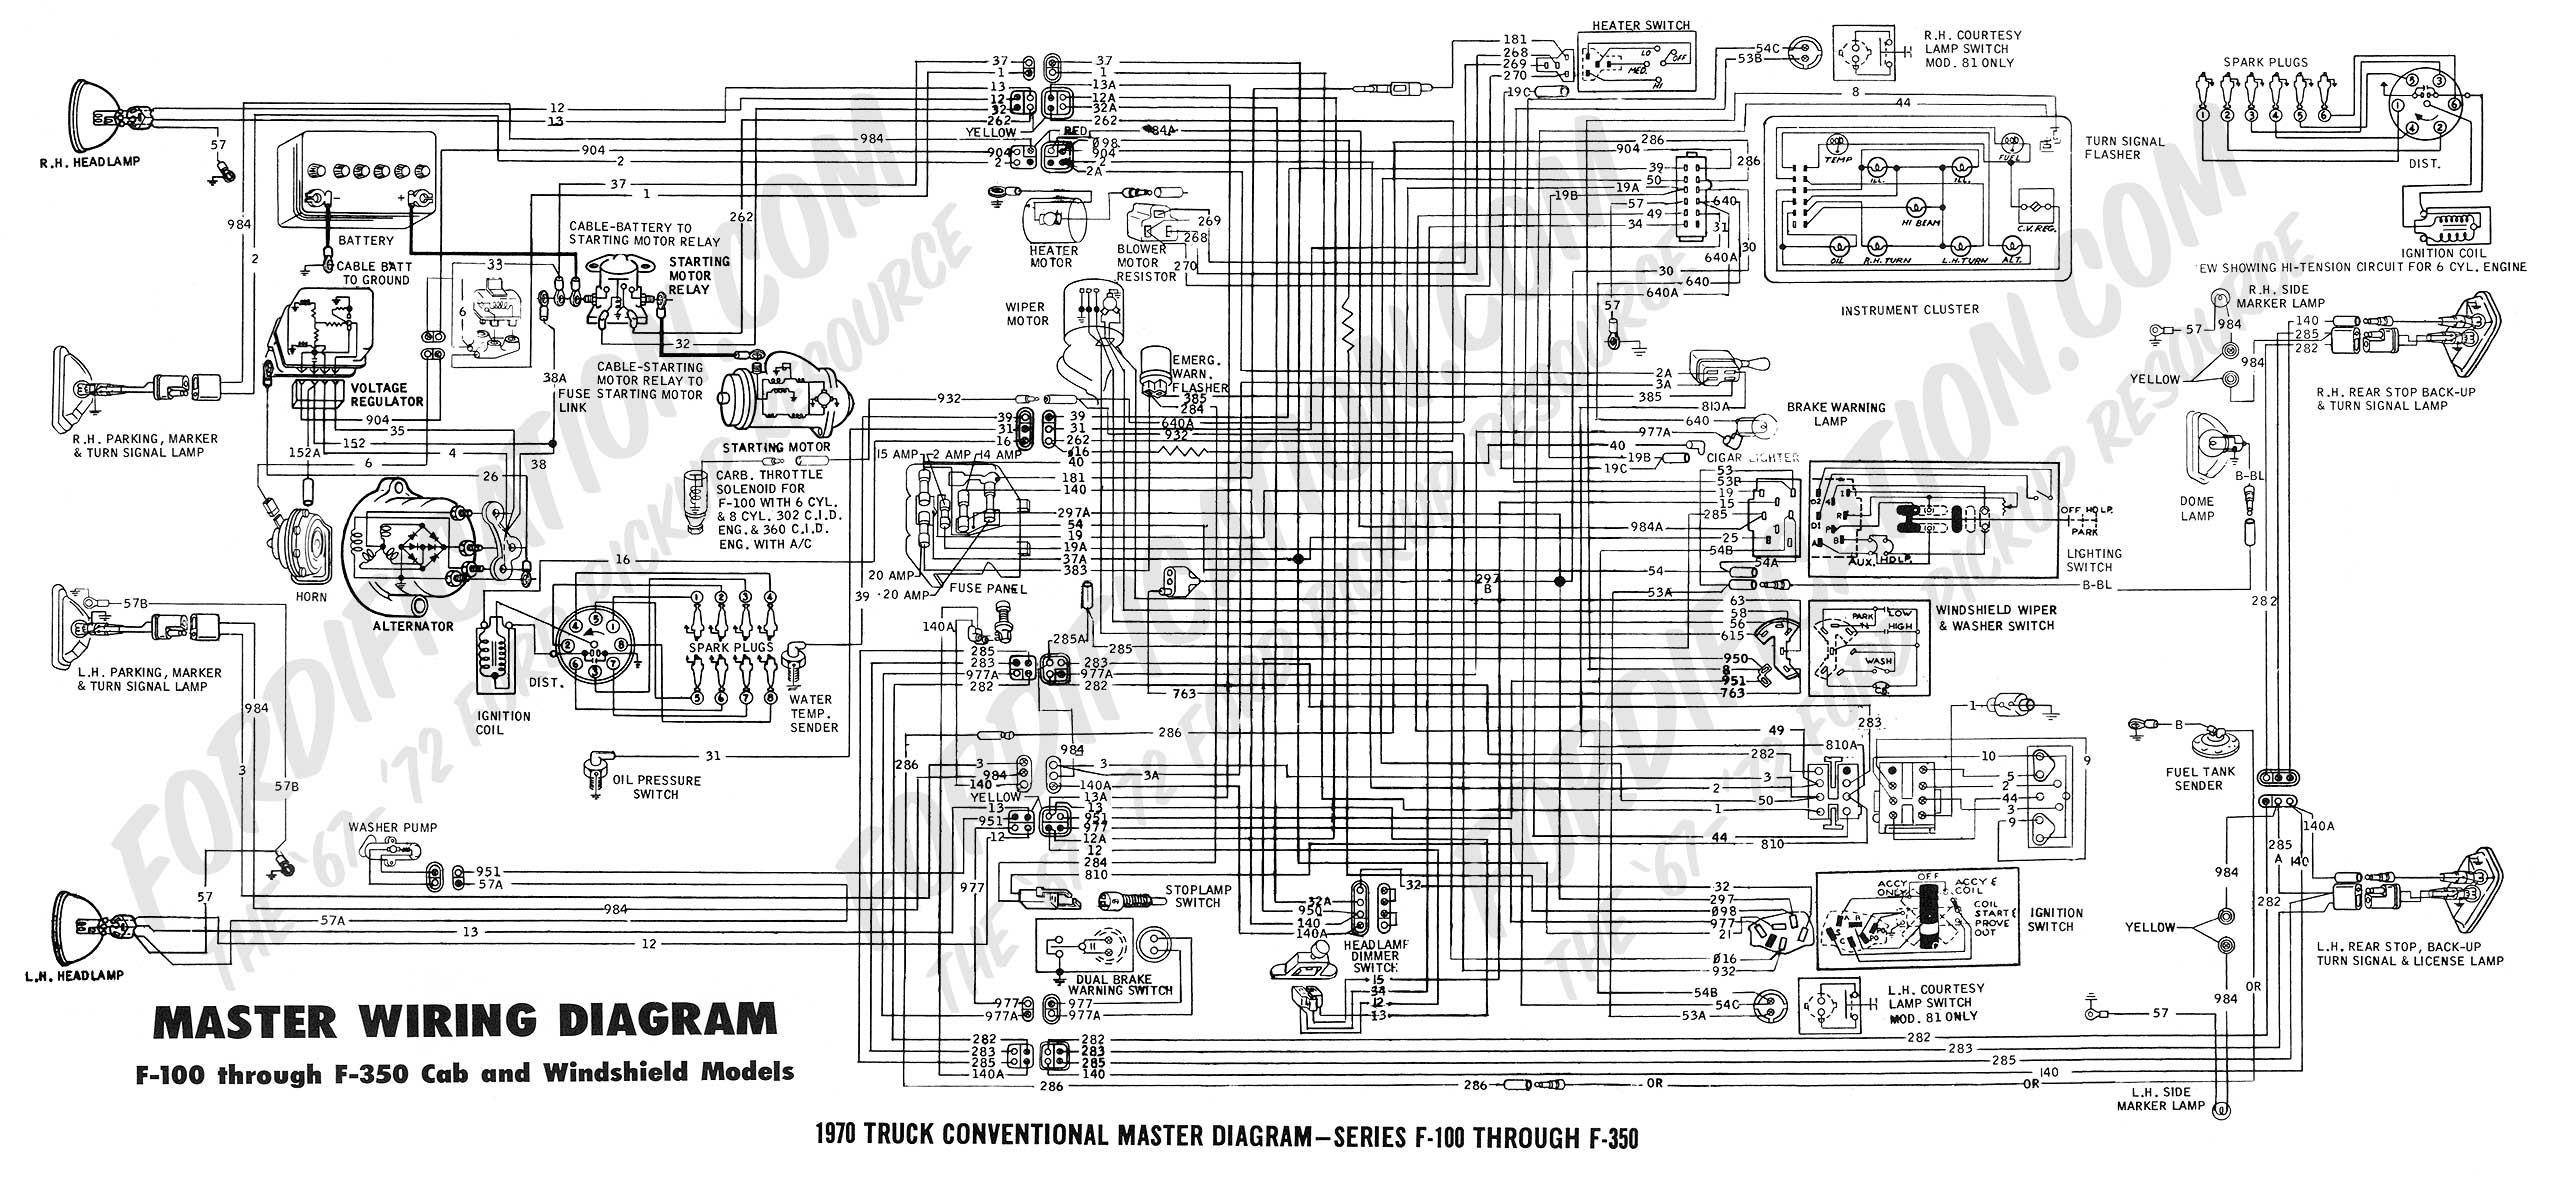 ford wiring diagrams ford image wiring diagram ford wiring diagrams ford wiring diagrams on ford wiring diagrams